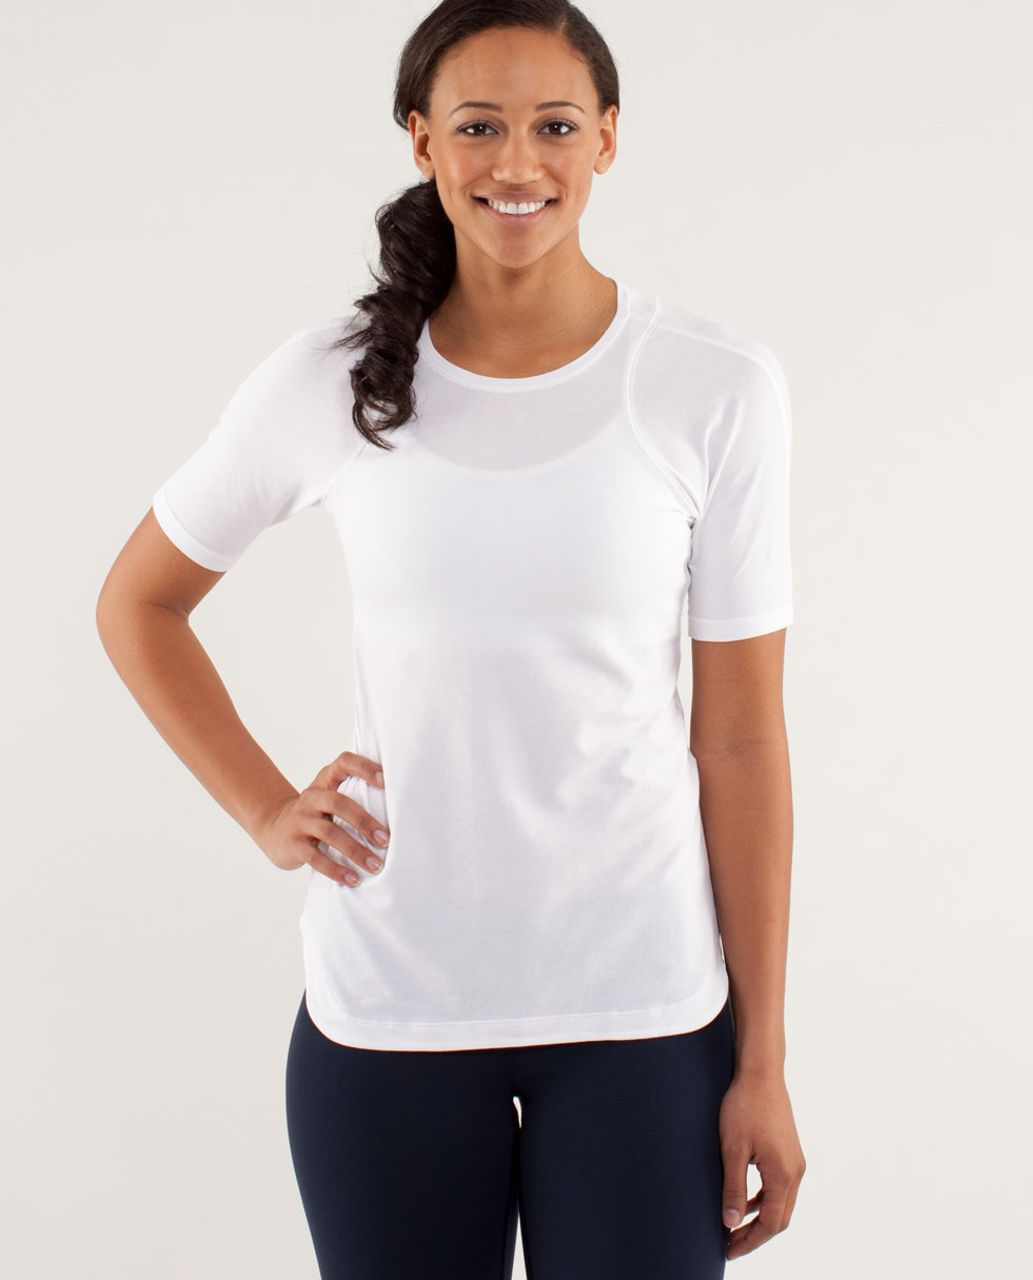 Lululemon Clari-Tee Short Sleeve - White